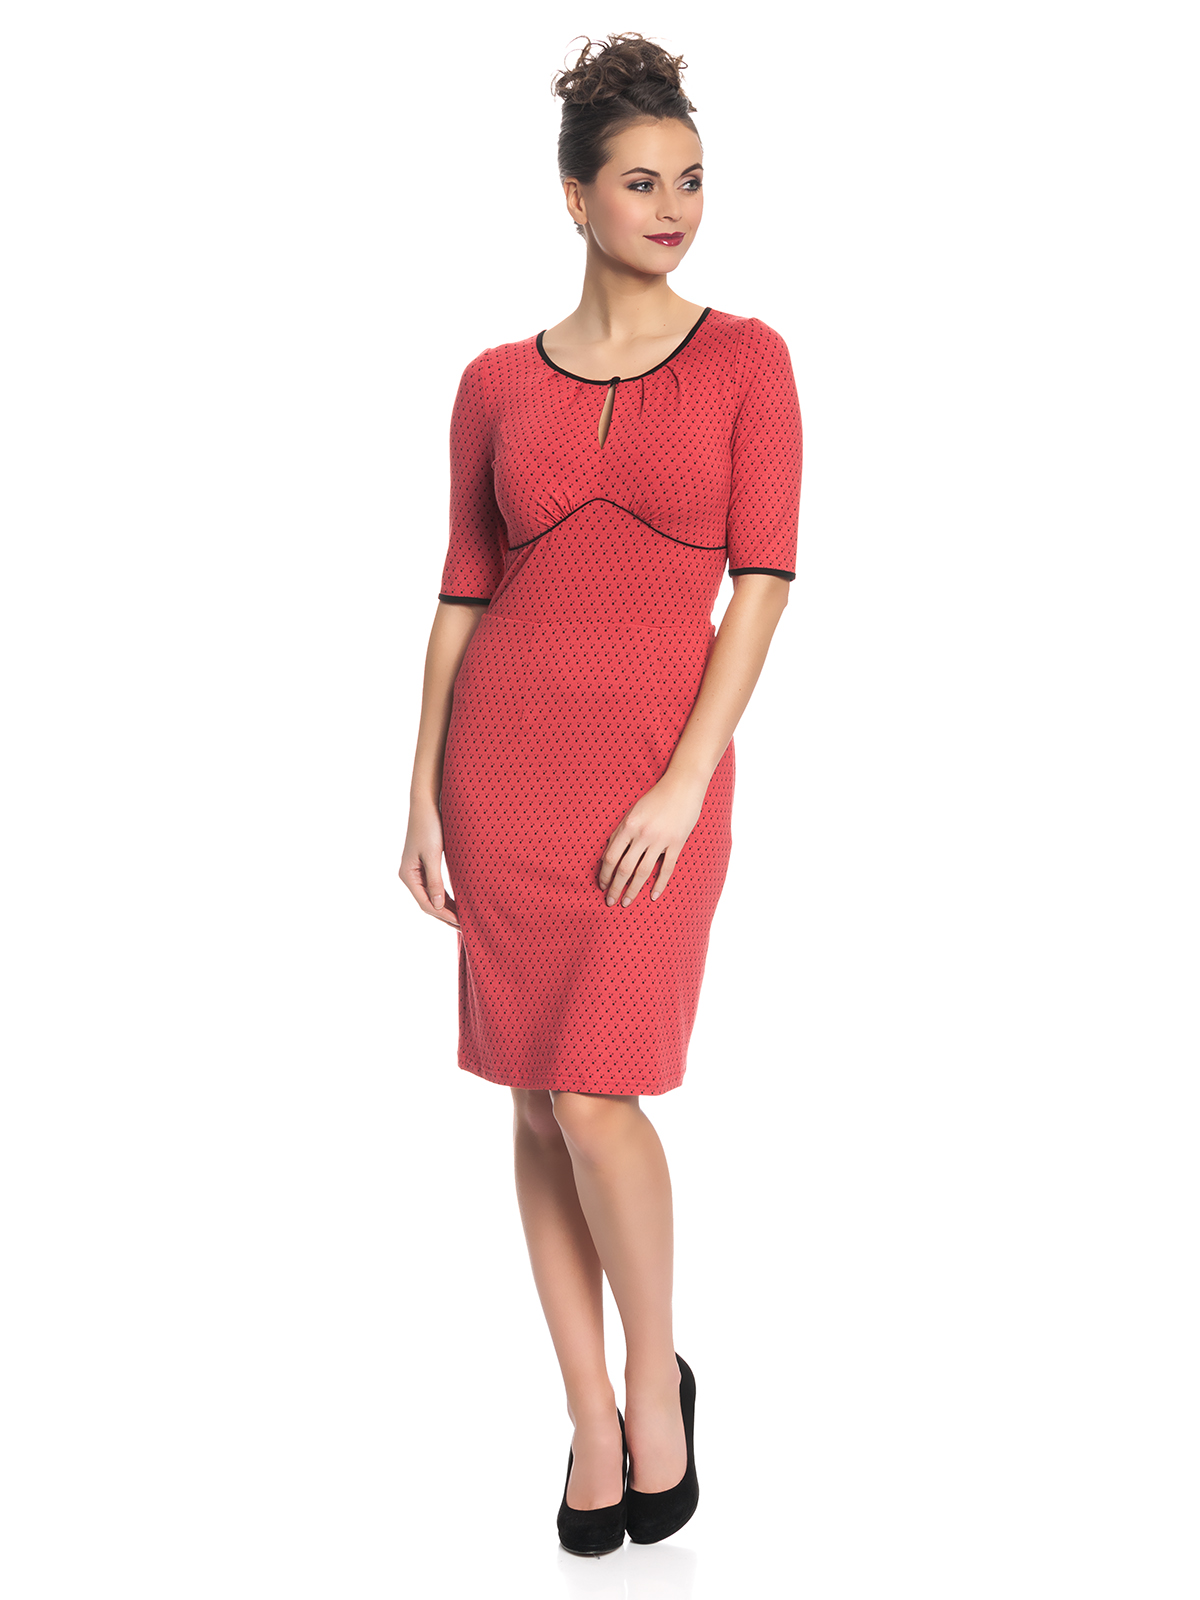 Vive Maria Lili Dress for Women Red Allover Clothing Dresses